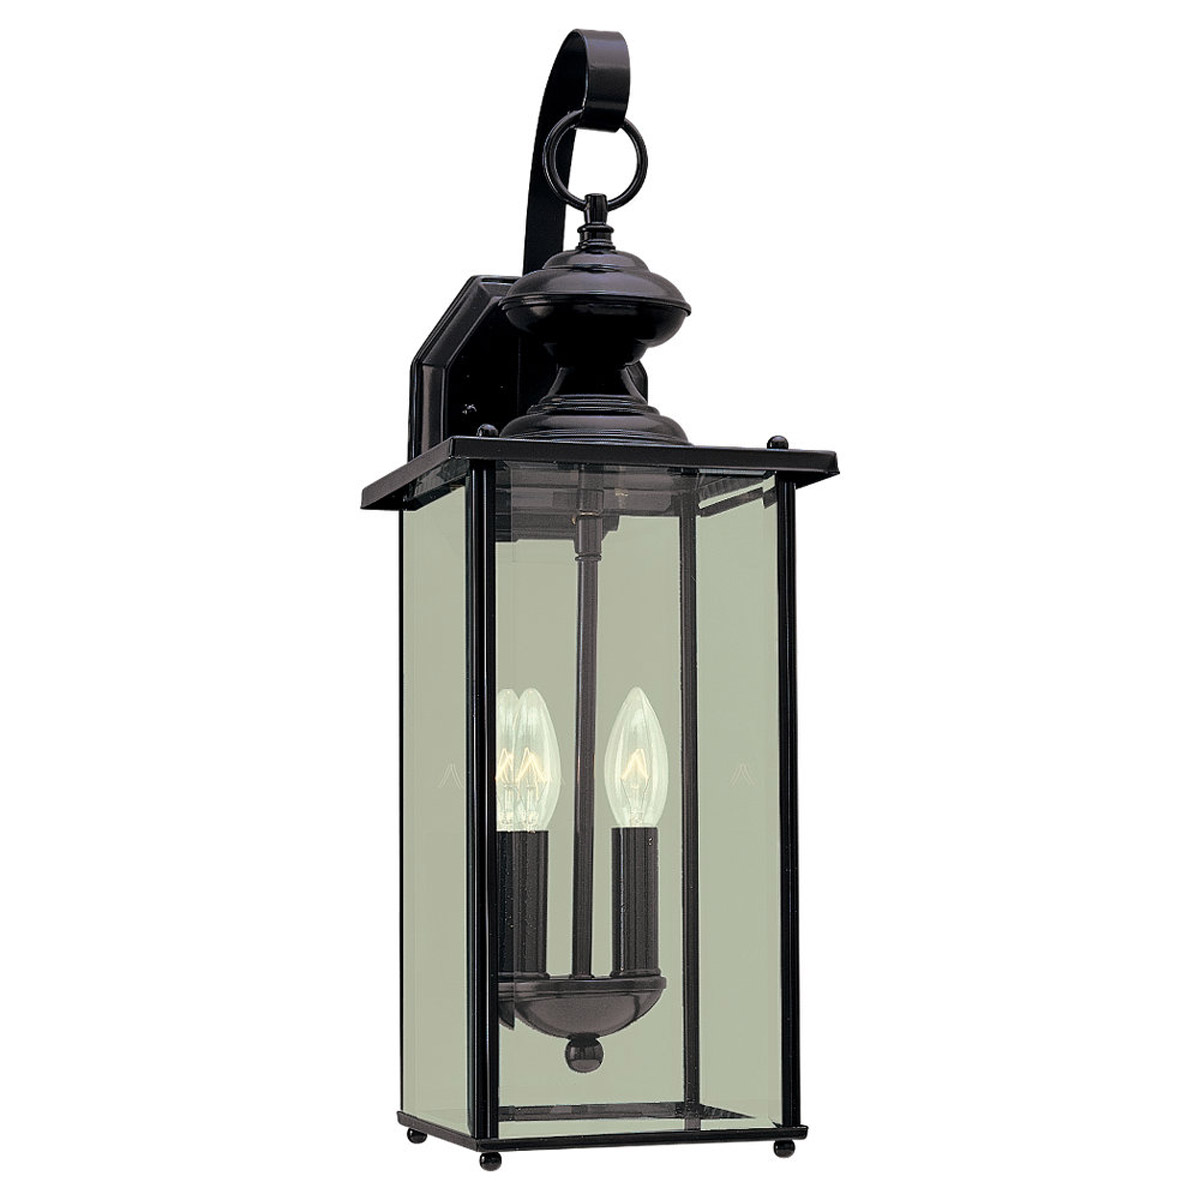 Sea Gull Lighting Jamestowne 2 Light Outdoor Wall Lantern in Black 8468-12